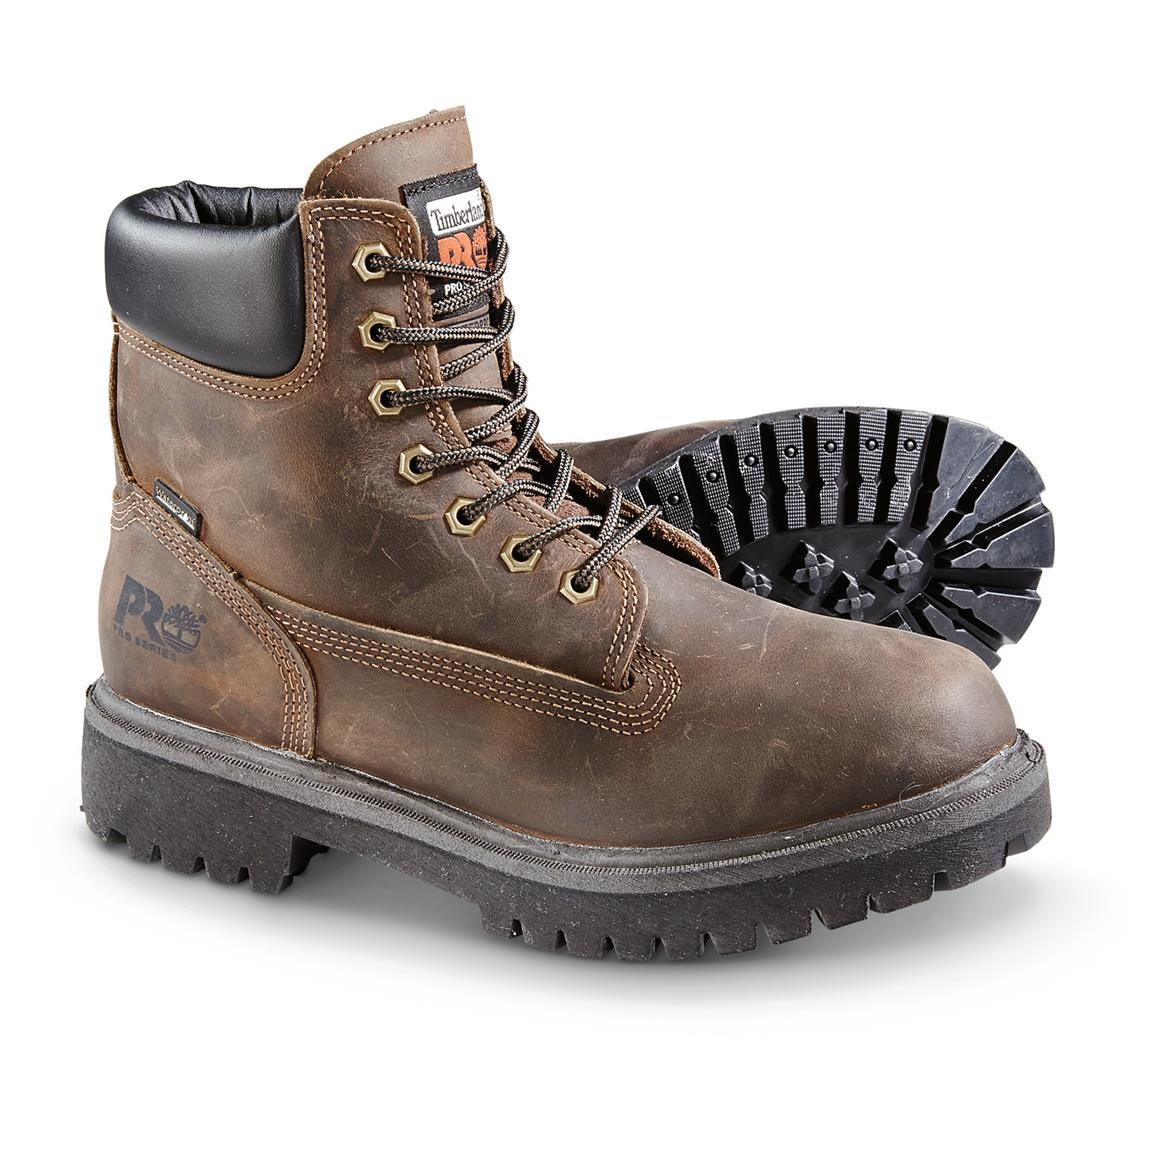 "Timberland PRO Direct Attach 6"" Soft Toe Waterproof Work Boots, Brown"